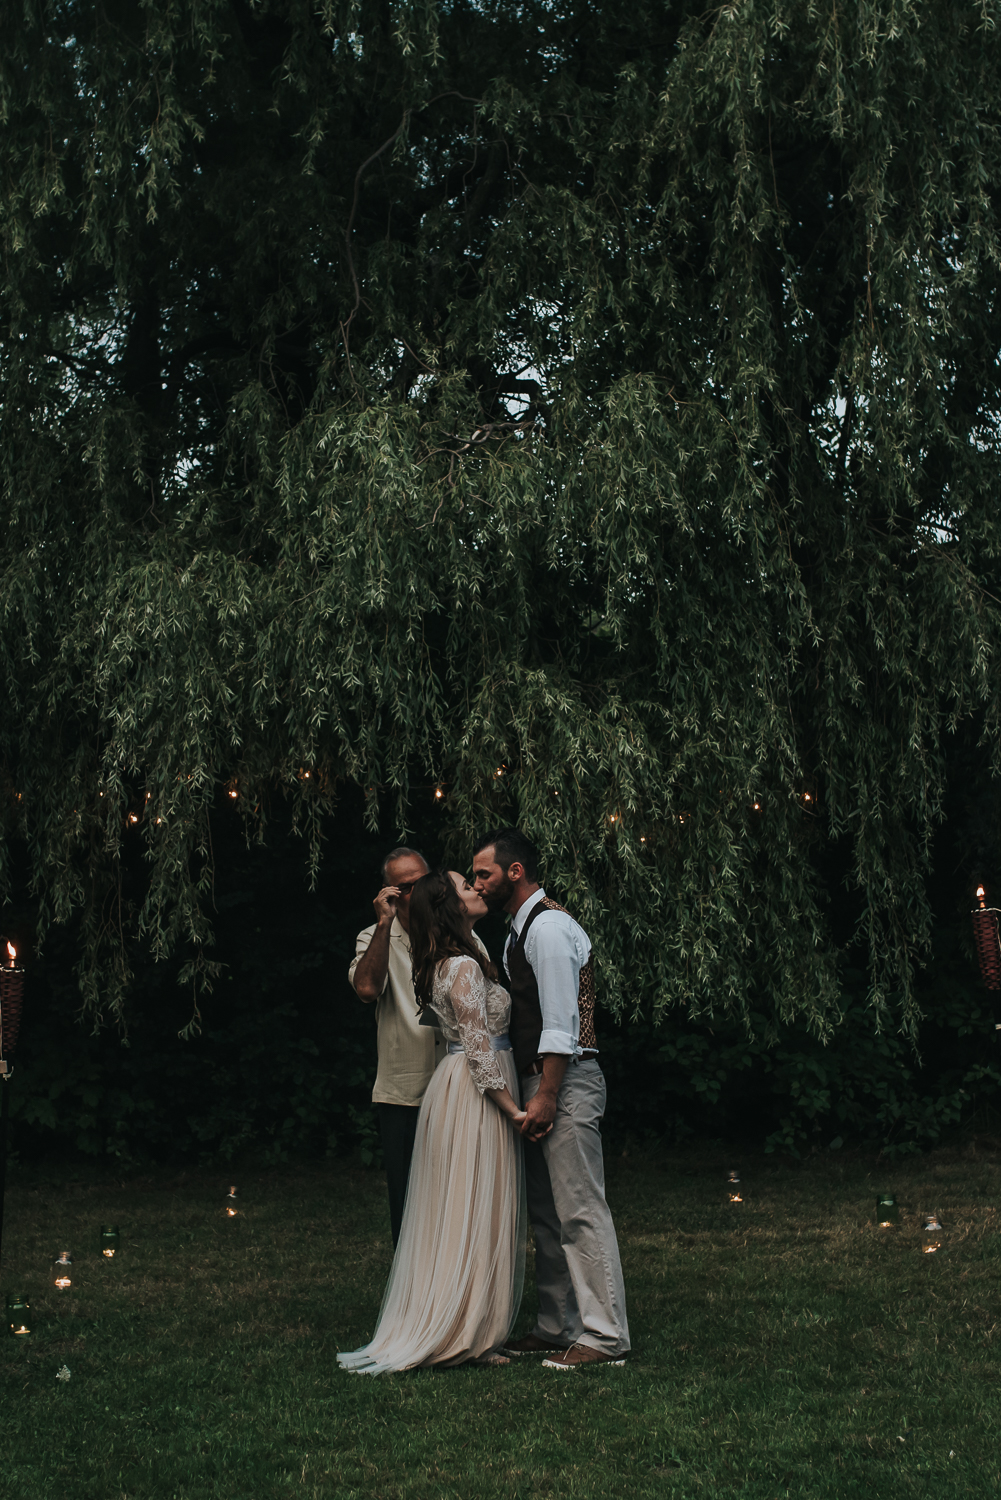 First kiss between the bride and groom surrounded by candles, twinkly lights and green grass and trees